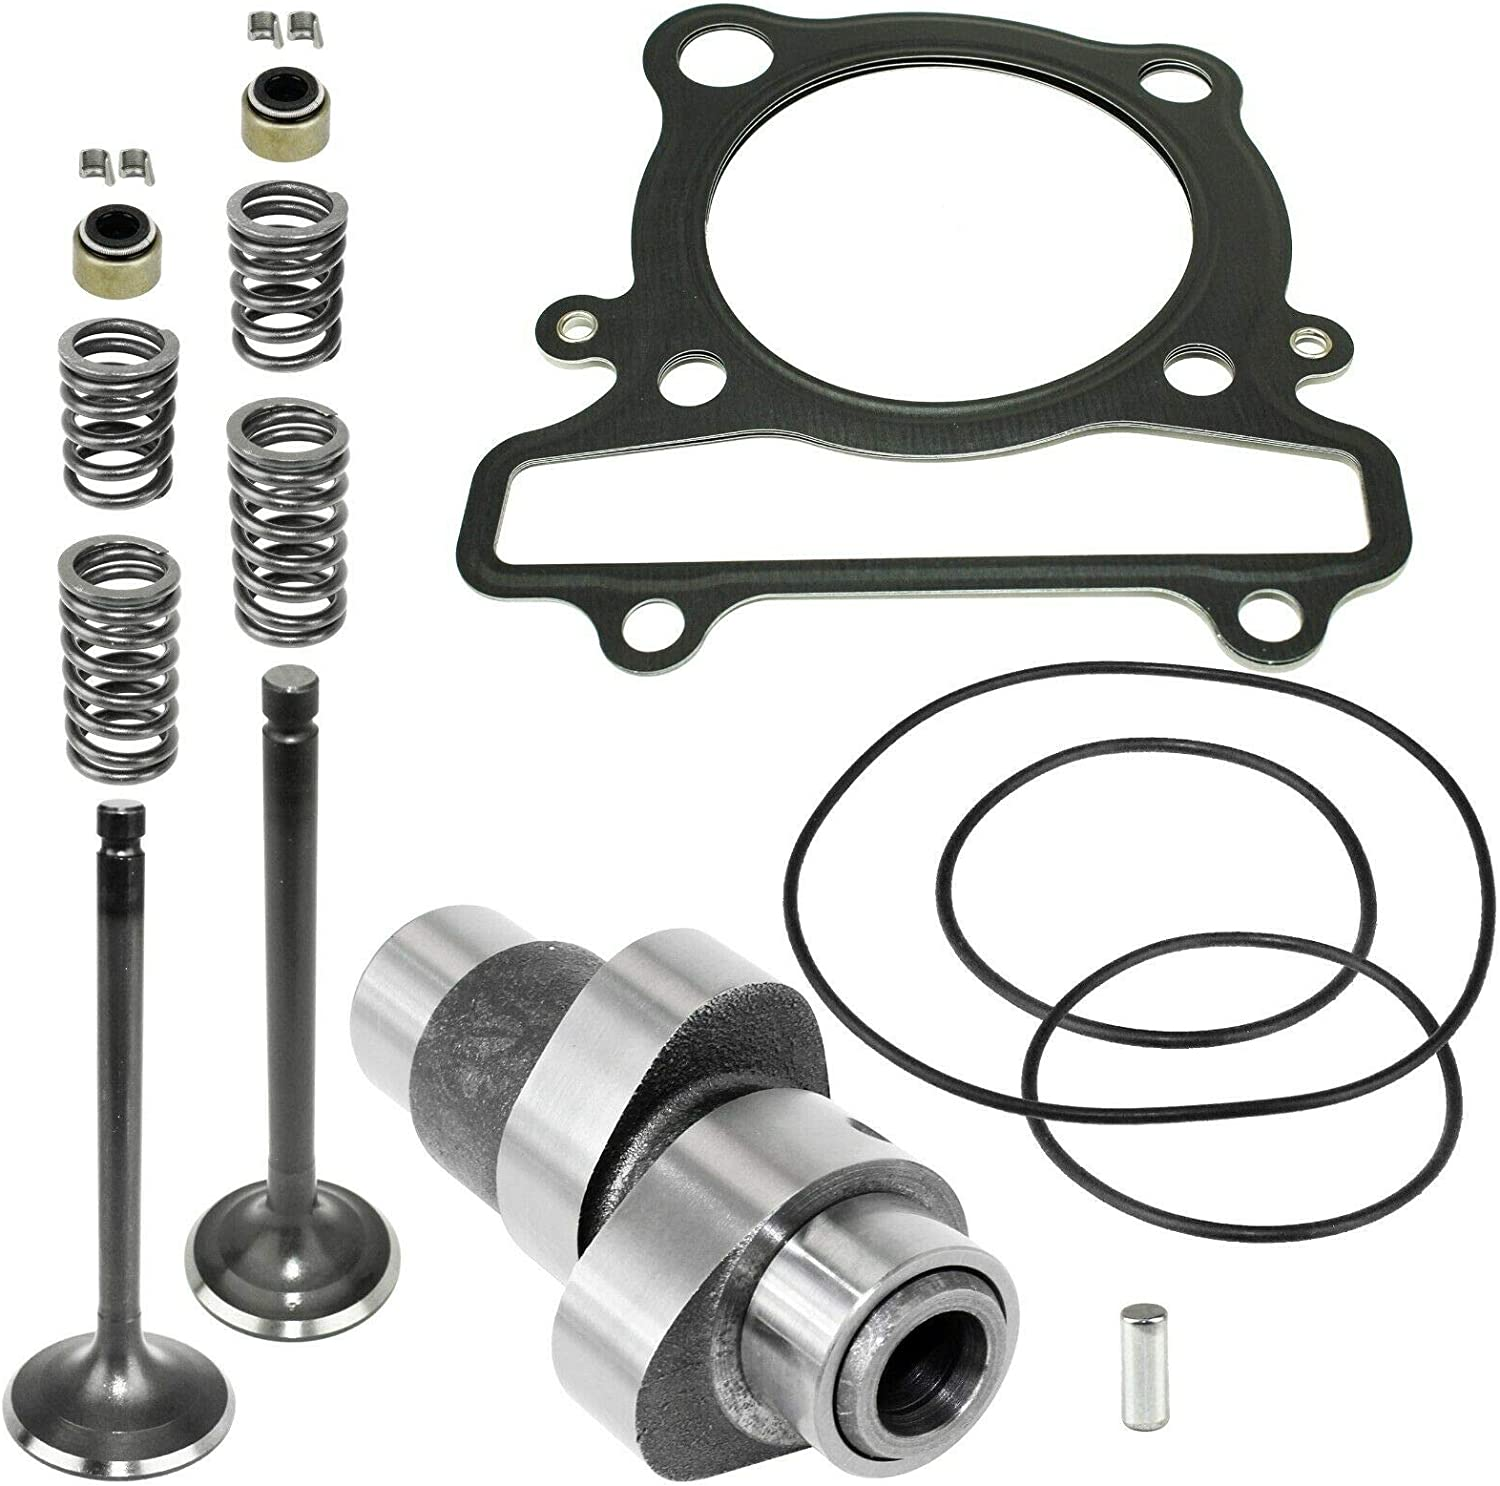 Caltric Camshaft and Cylinder Head Valve Gasket Kit Compatible With Yamaha Warrior 350 YFM350X 1987-2004